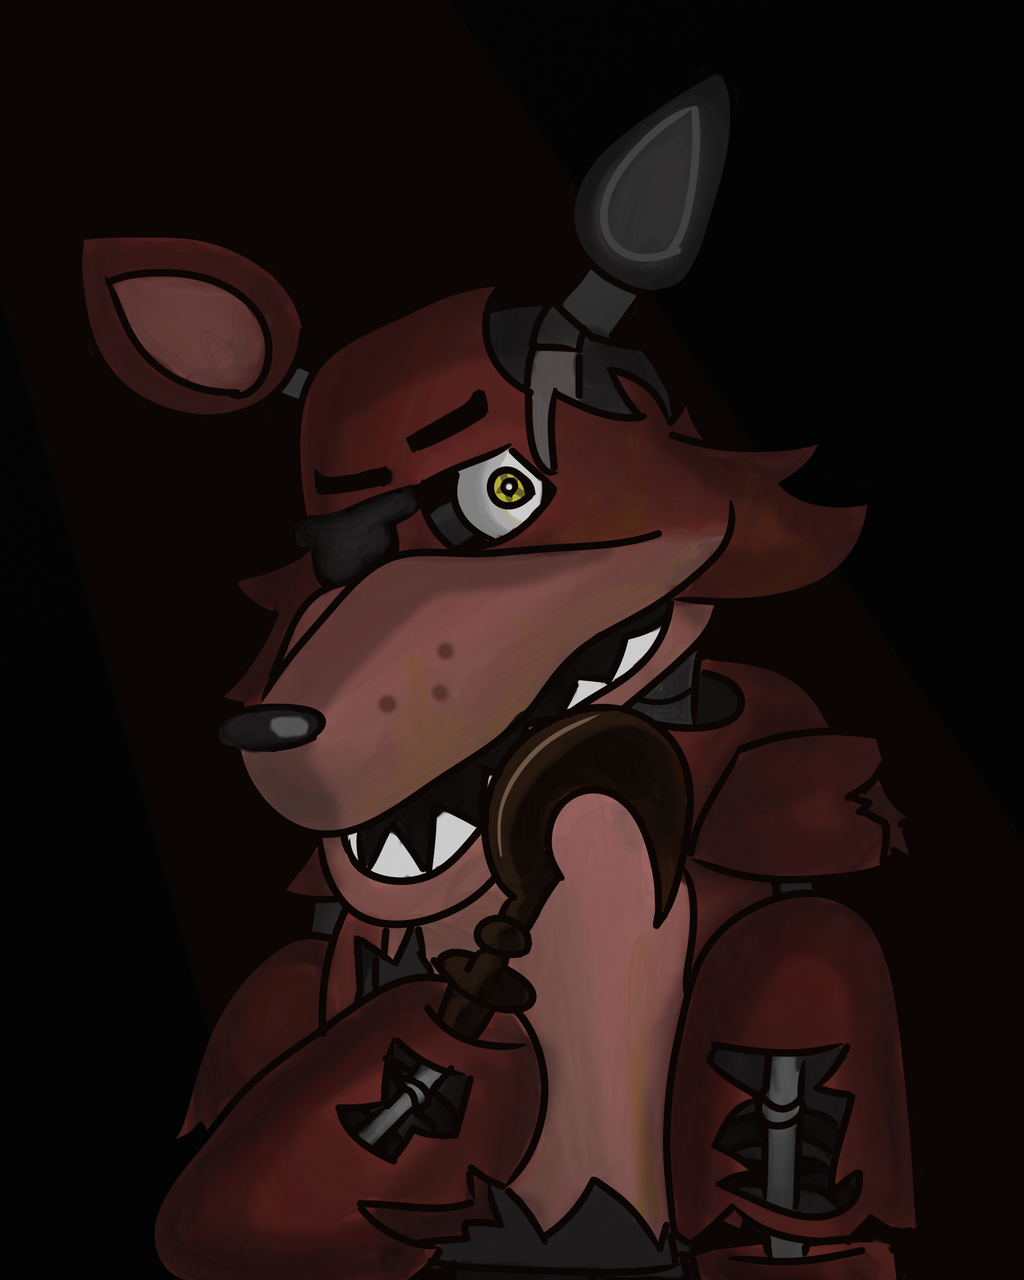 The Good Old Days -Withered Foxy- (FNAF) By Zeronucks On